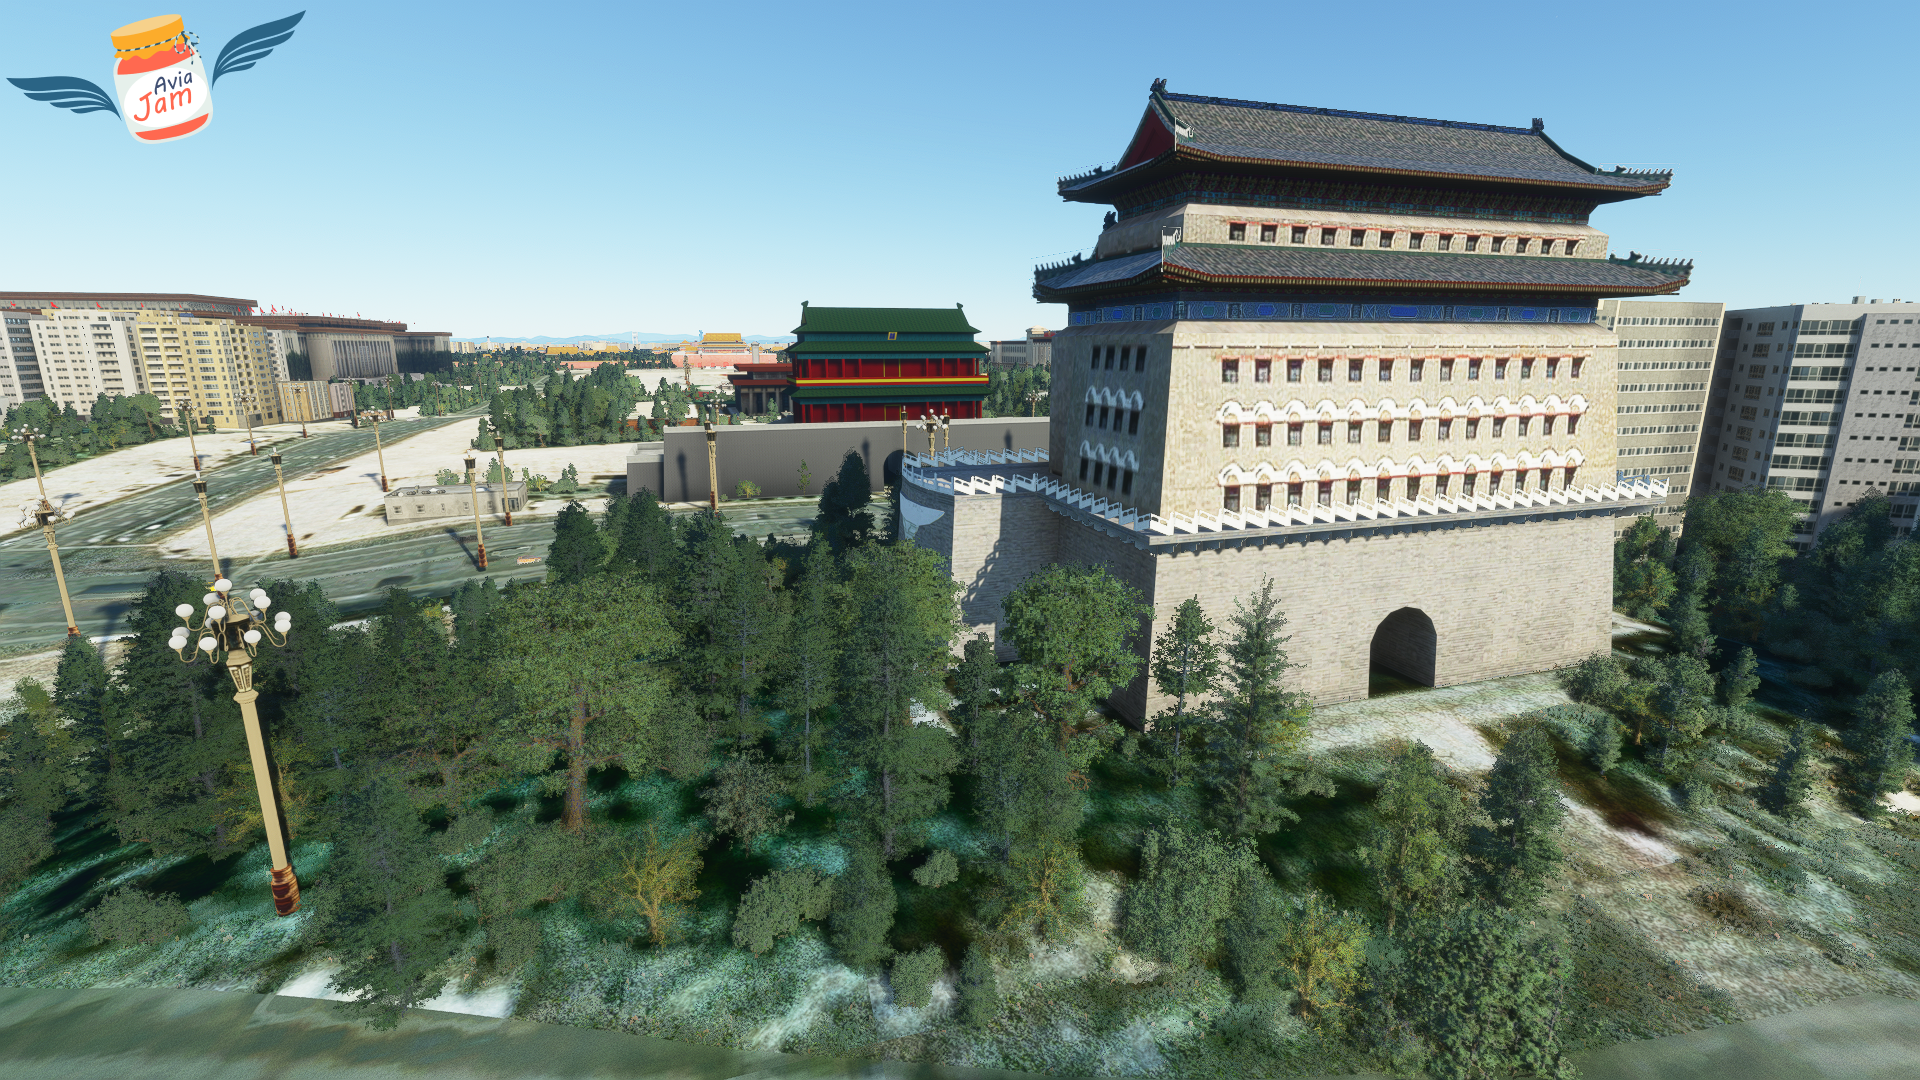 AVIAJAM PRODUCTION - BEIJING LANDMARKS - MSFS